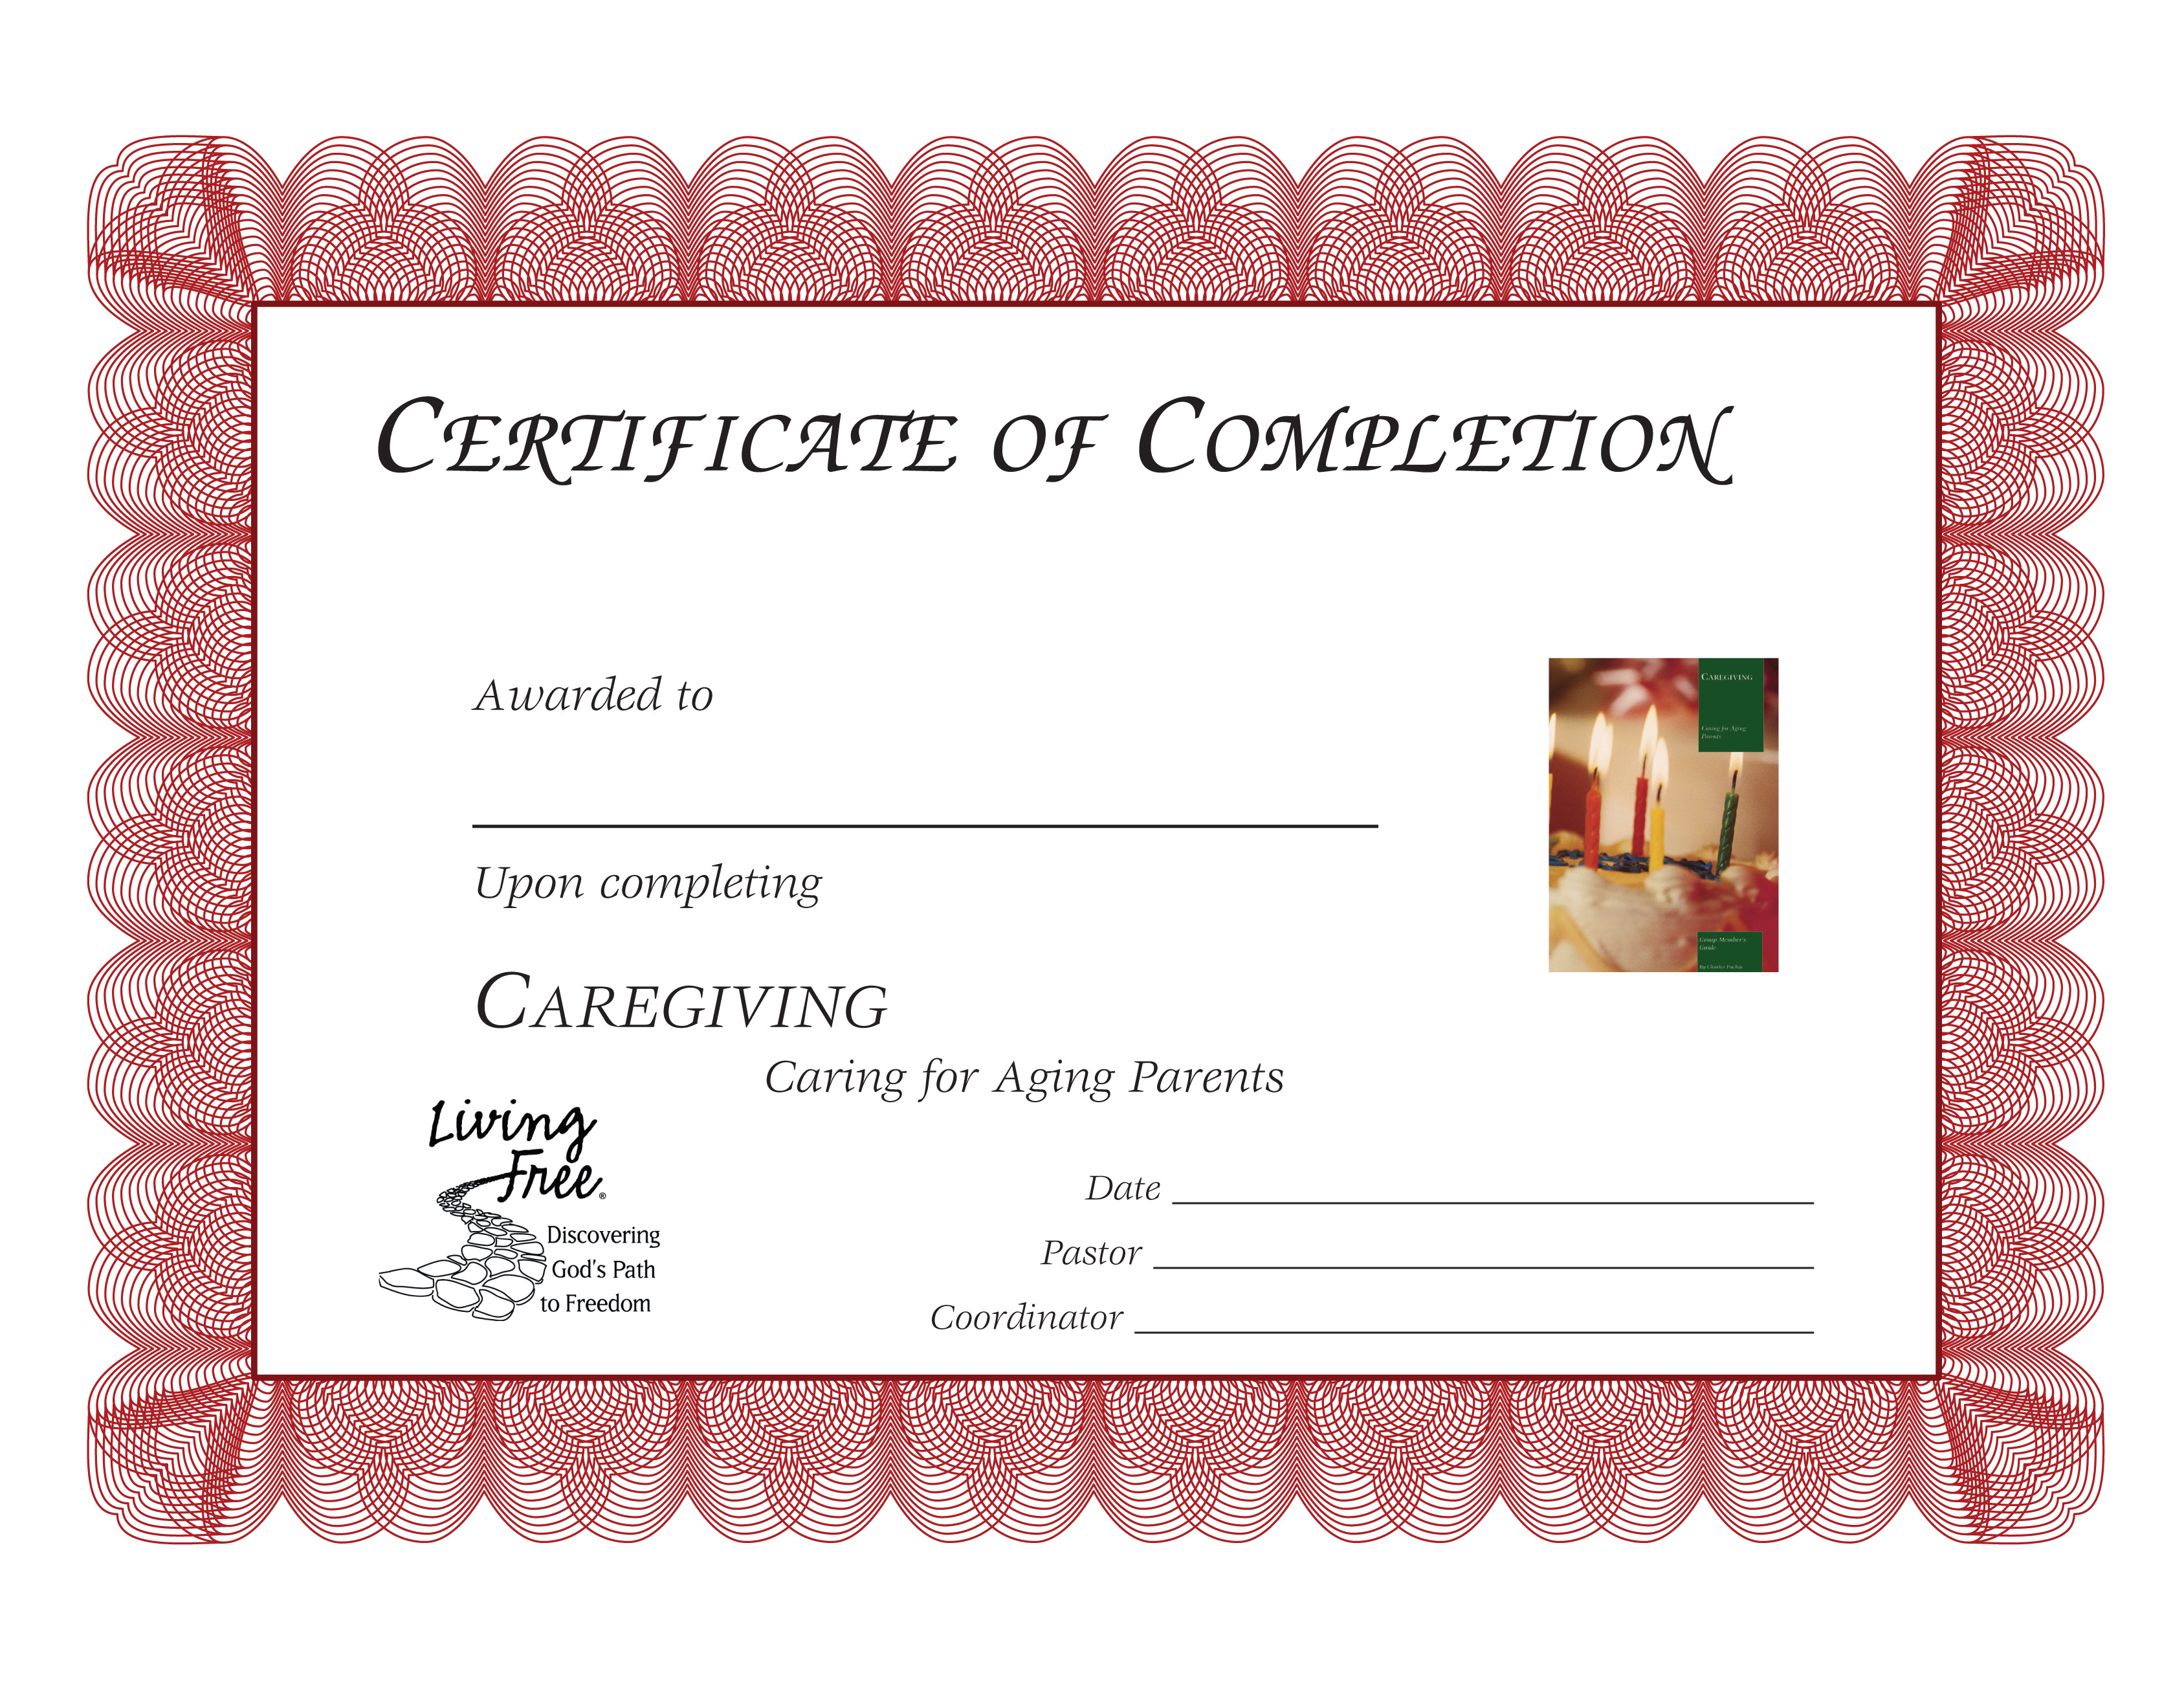 Caregiving: Digital Certificaten